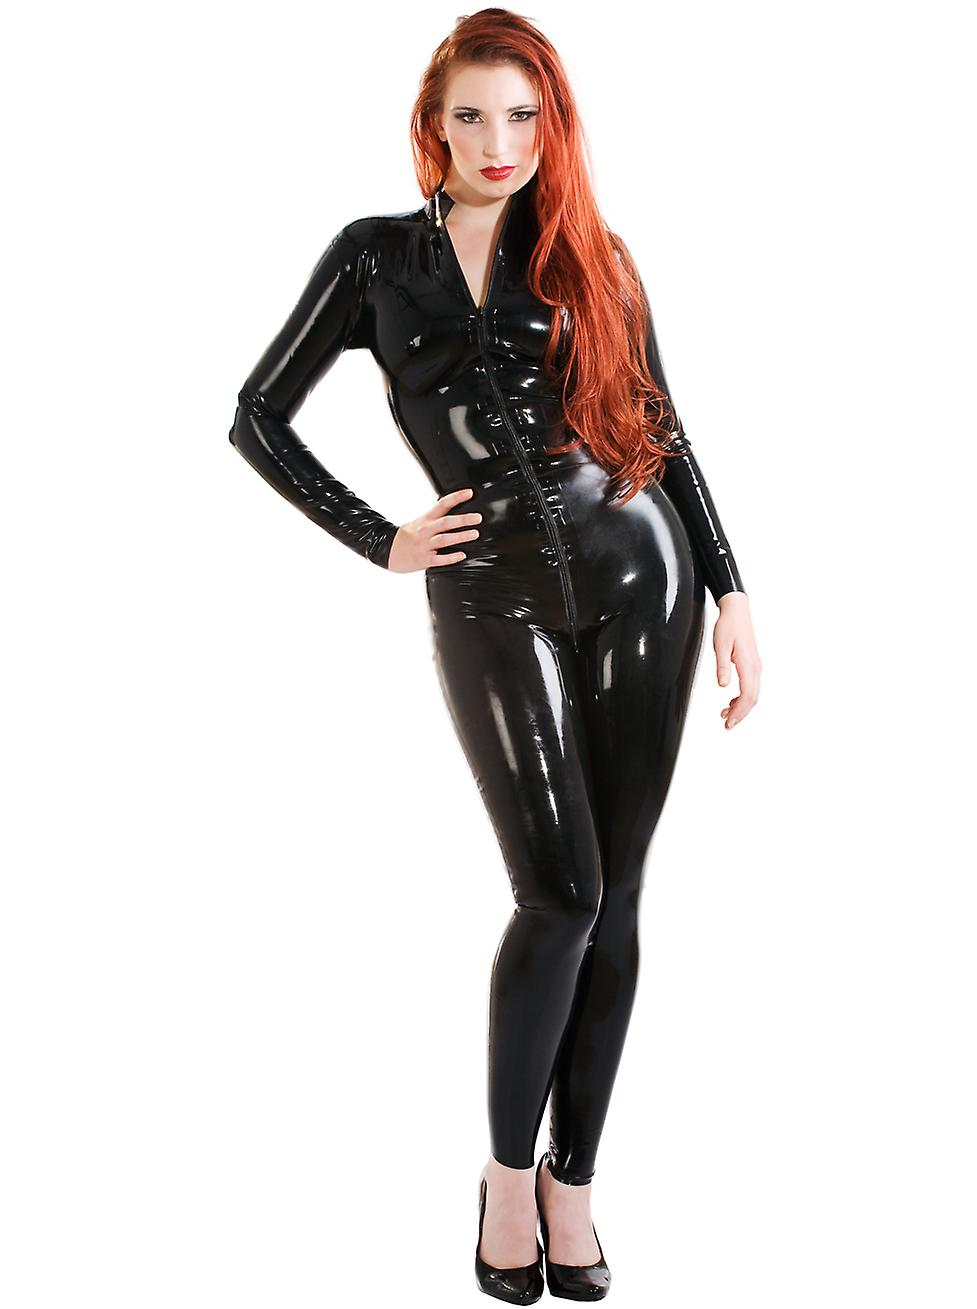 Skin Two Clothing Women's Kinky Catsuit Costume Outfit Latex Rubber Front Zip